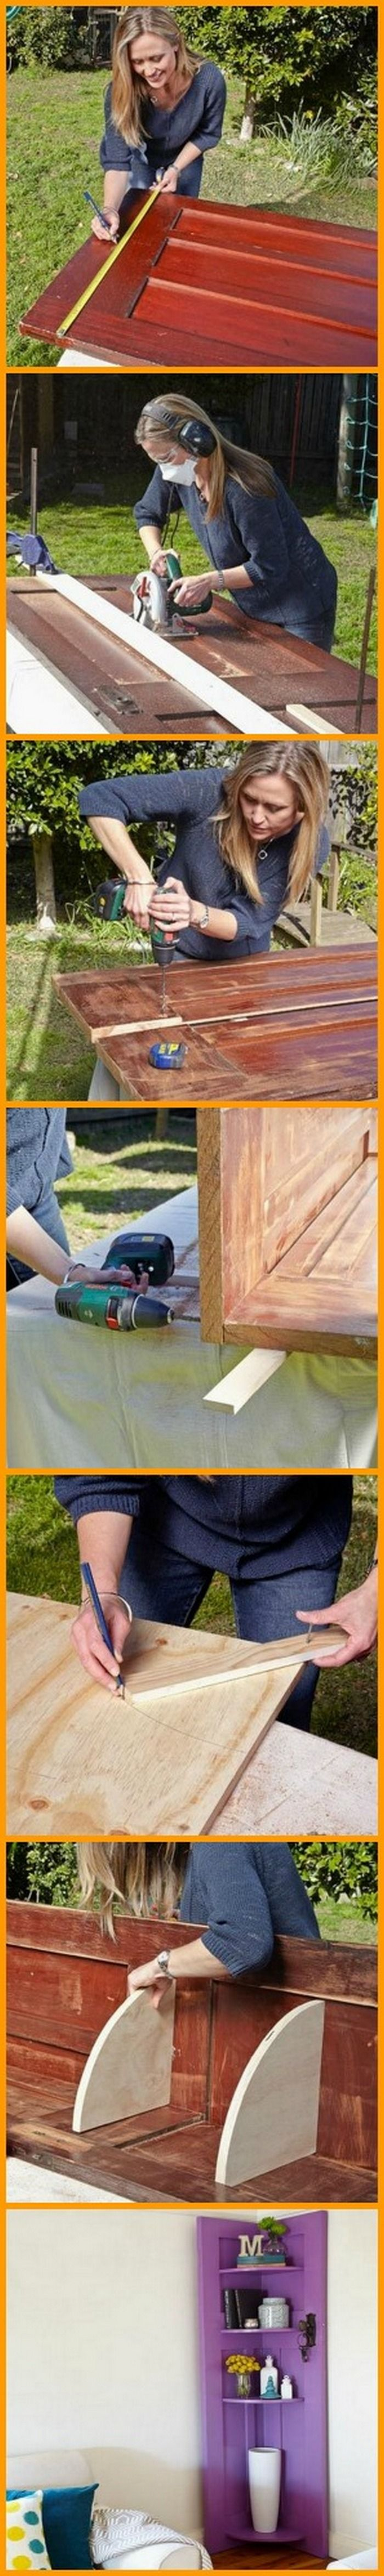 This DIY corner shelf is a clever way of giving new purpose to old doors. Turn an old door into a corner shelf by viewing the full album of the project at http://theownerbuildernetwork.co/n0qa Is there are corner in your house where this would fit?